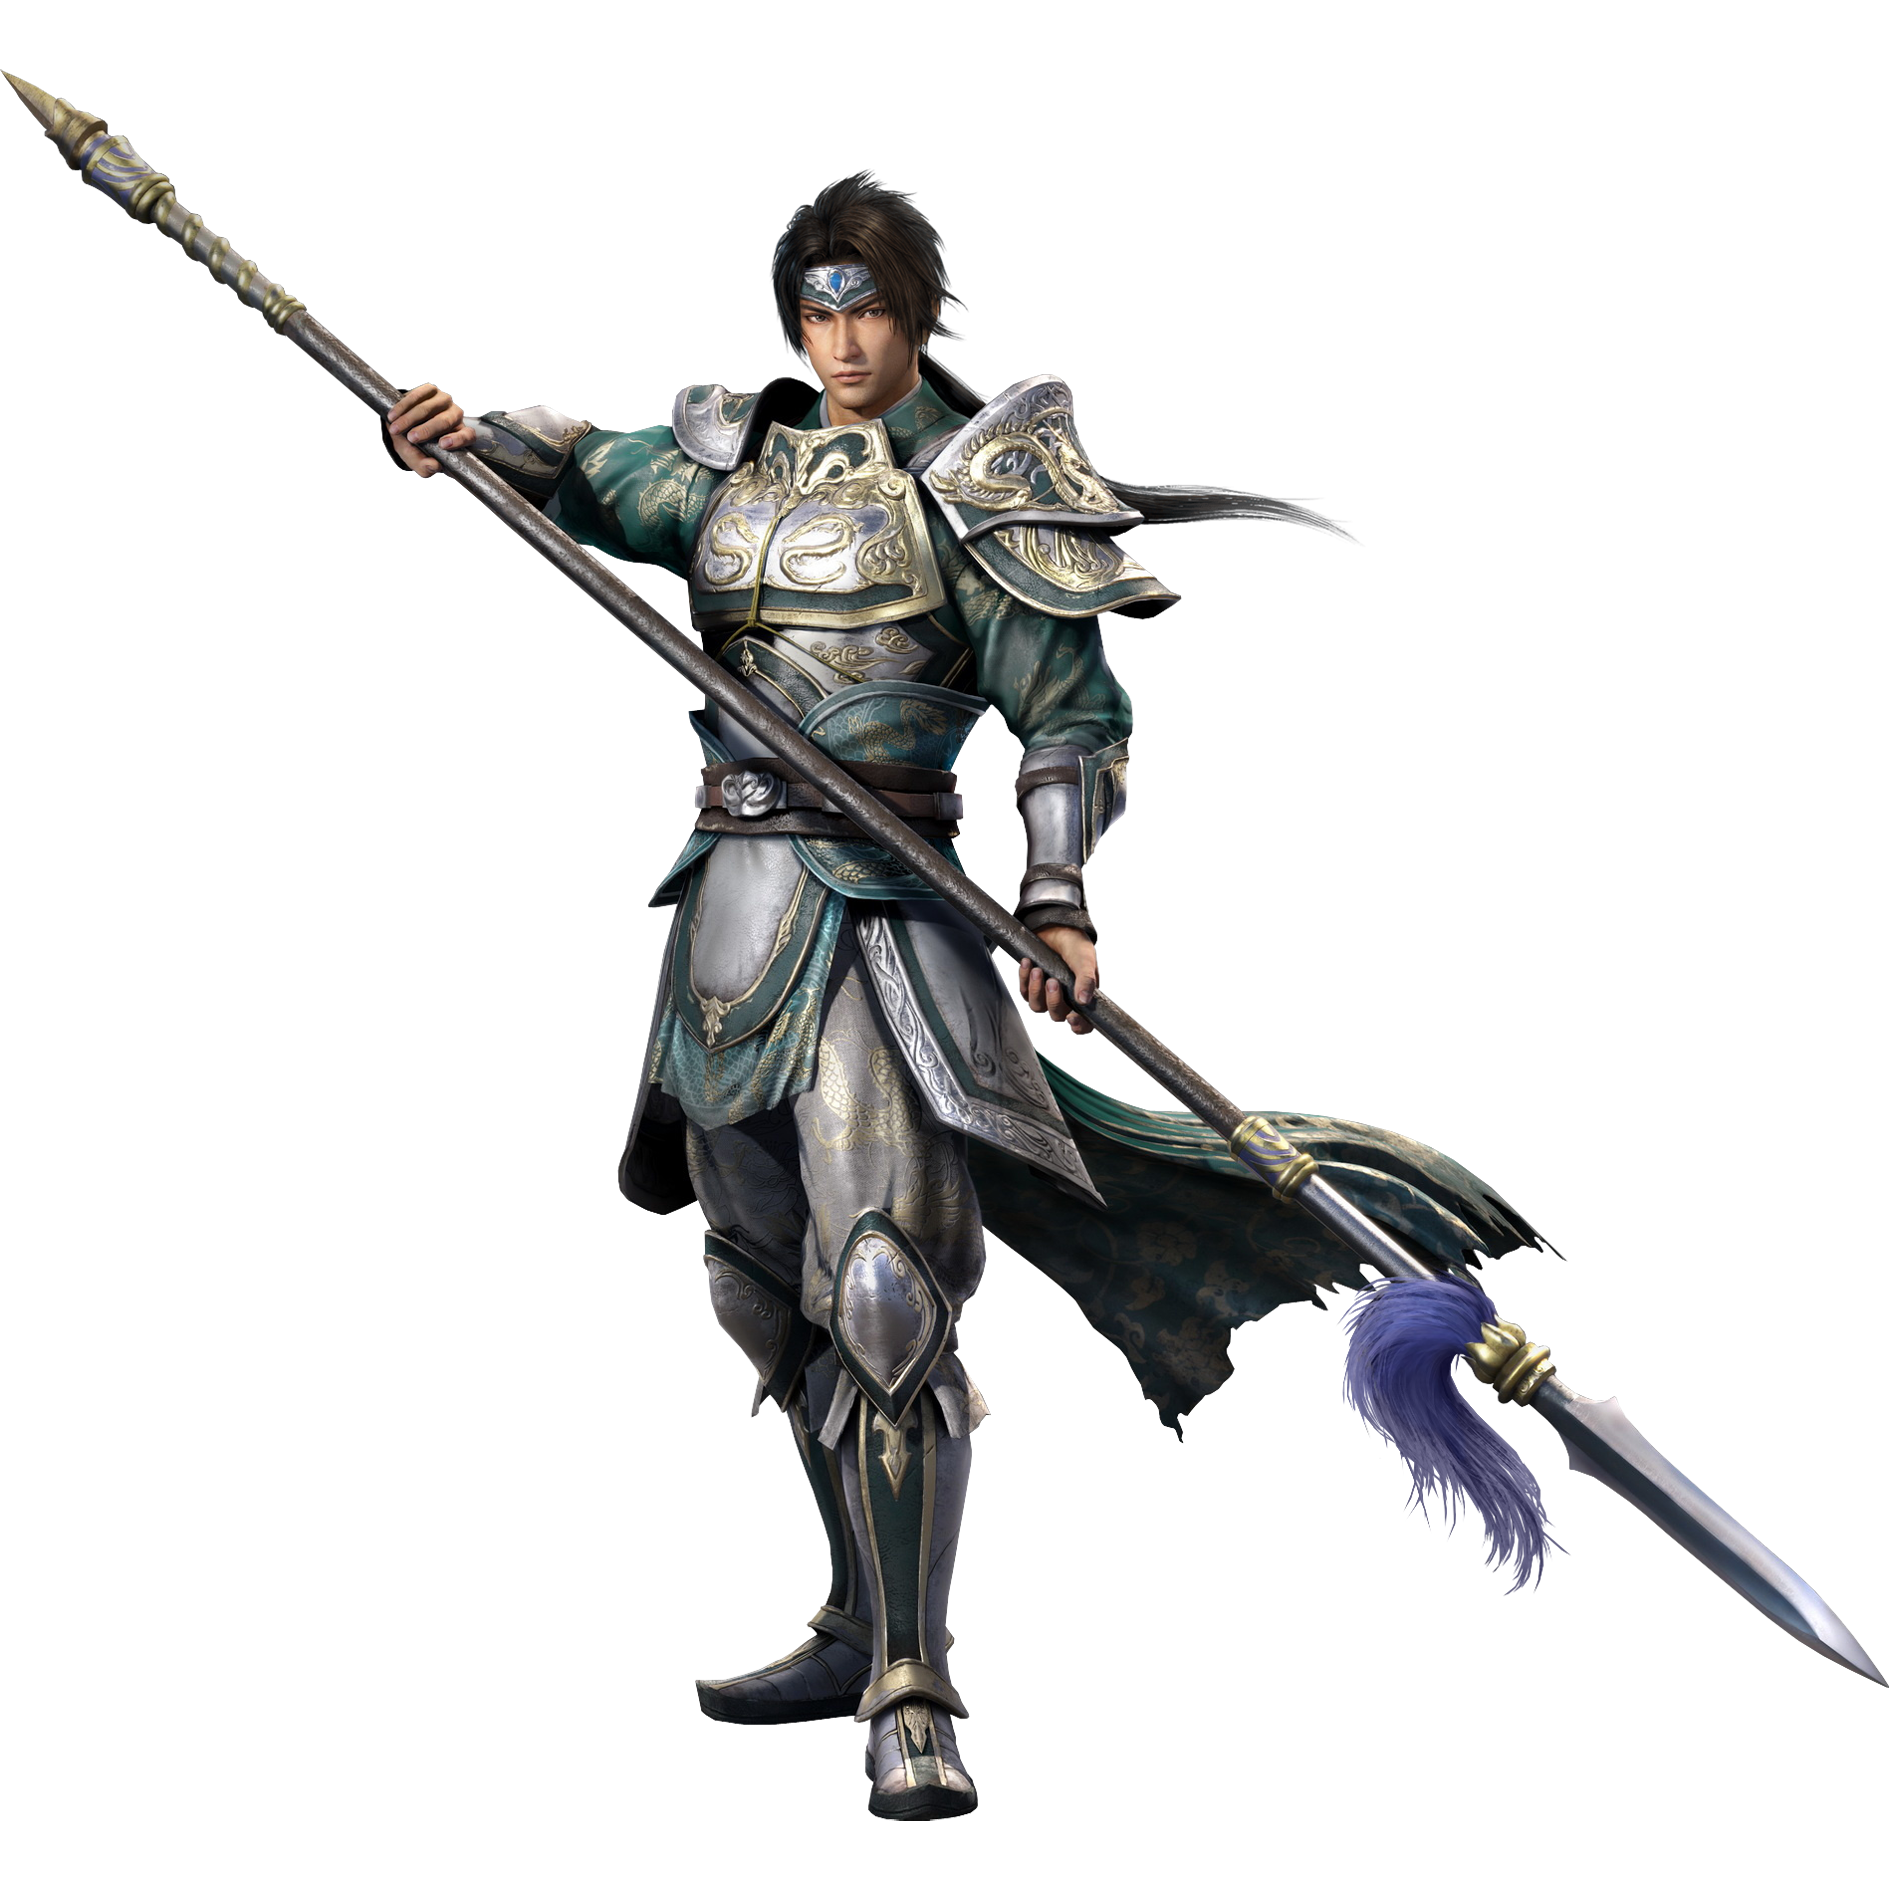 Warriors Orochi 3 9 Tails: Image - Zhao Yun (DW9).png